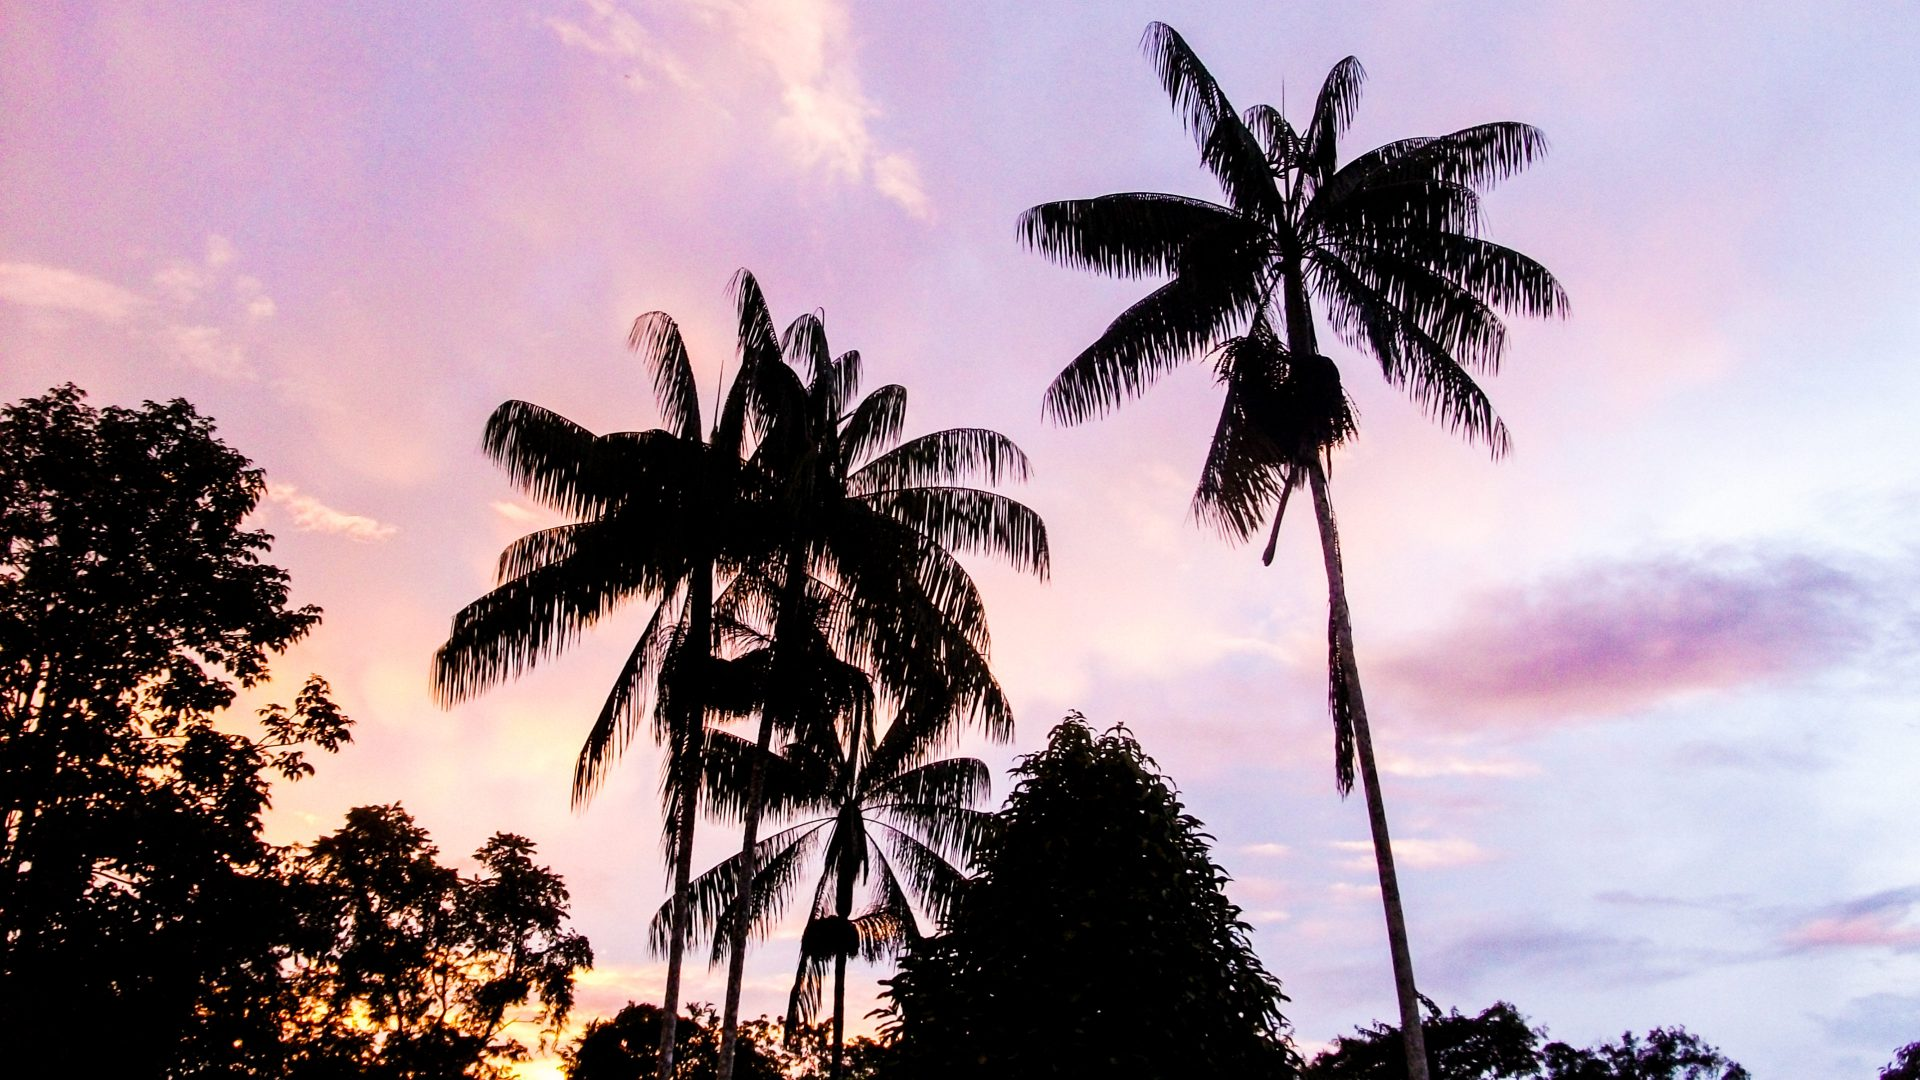 Palm trees are silhouetted against a magenta sky as the sun sets in the Amazon.